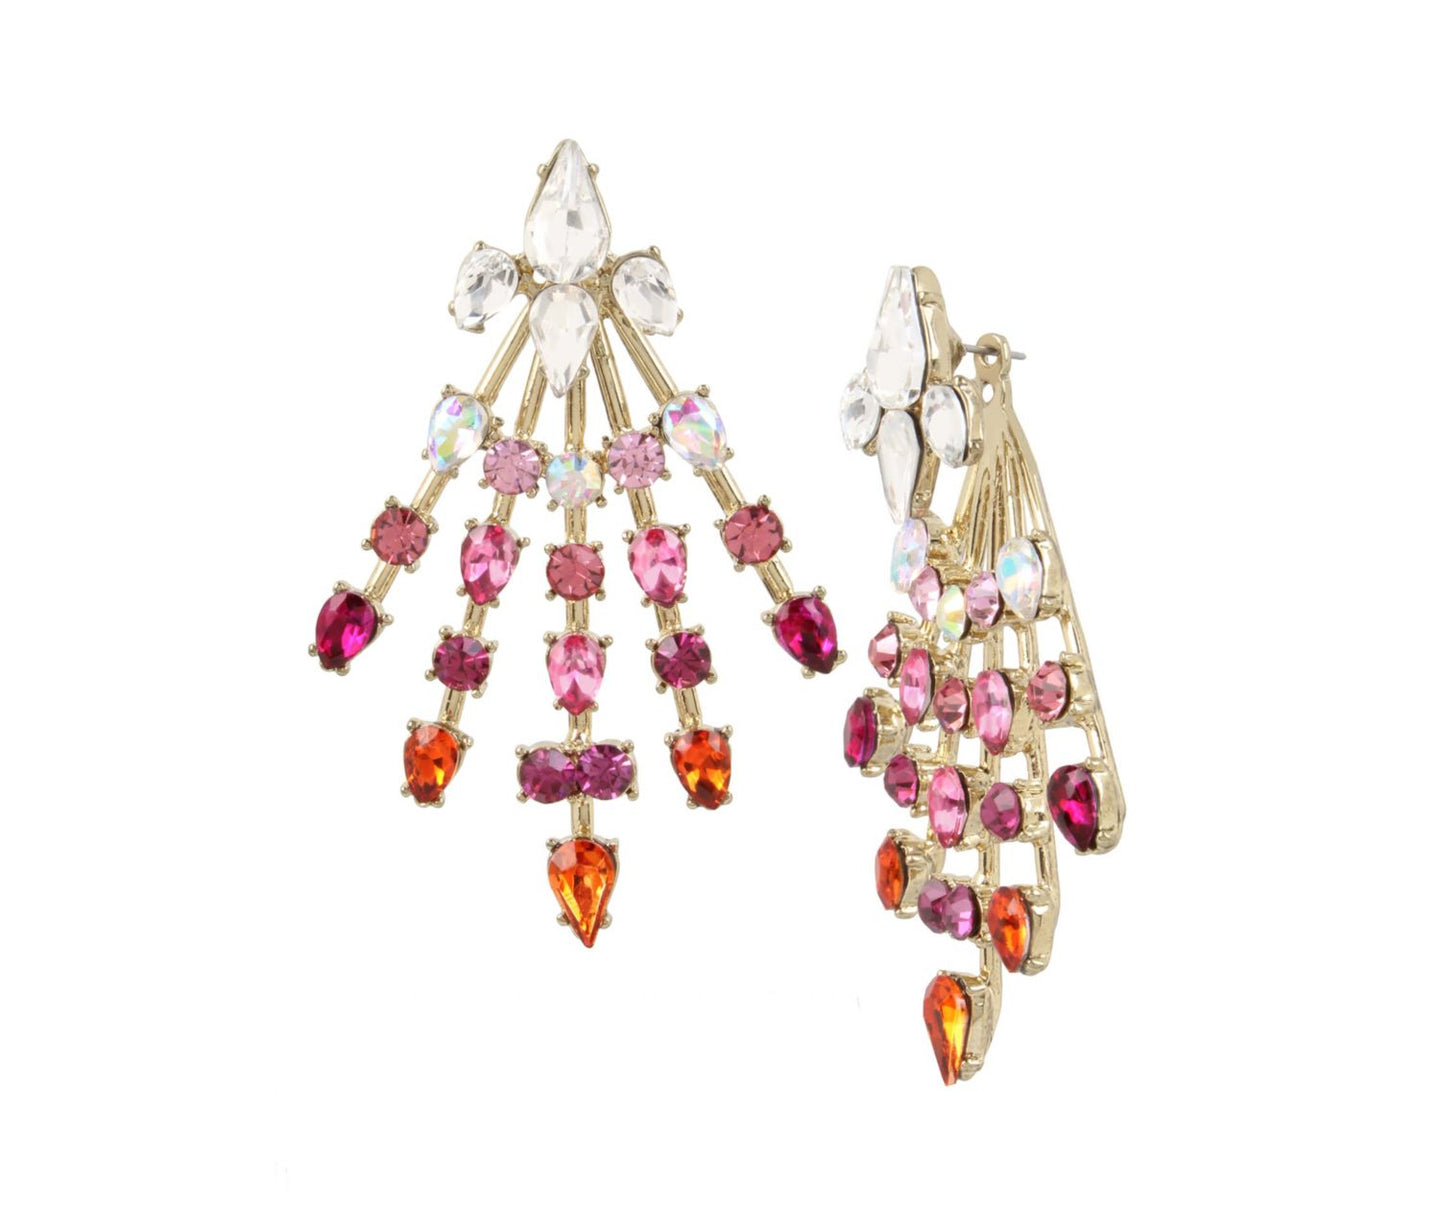 MAGICAL SHOW SPRAY FRONT BACK EARRINGS PINK - JEWELRY - Betsey Johnson